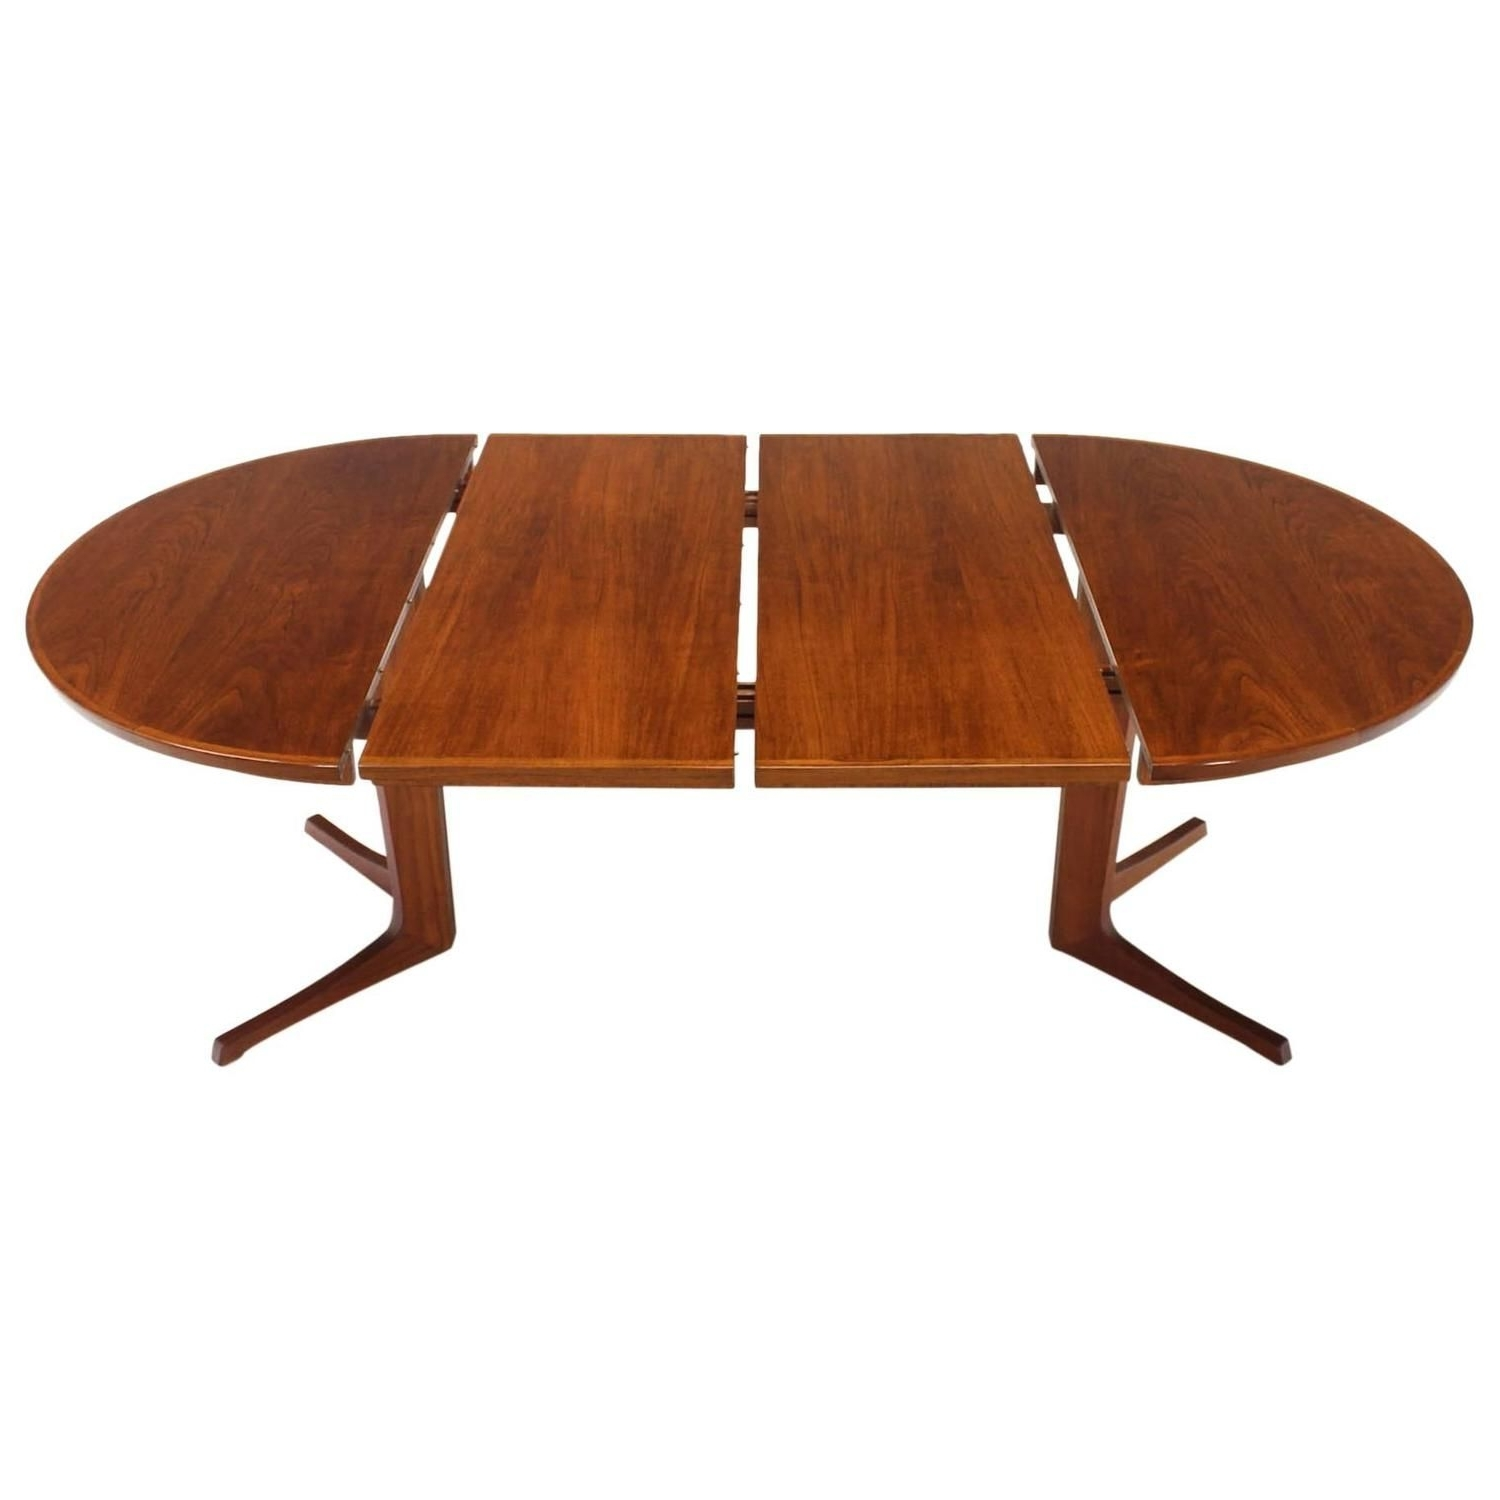 Round Danish Mid Century Modern Teak Dining Table With Two Leaves Inside Latest Oval Dining Tables For Sale (View 19 of 25)